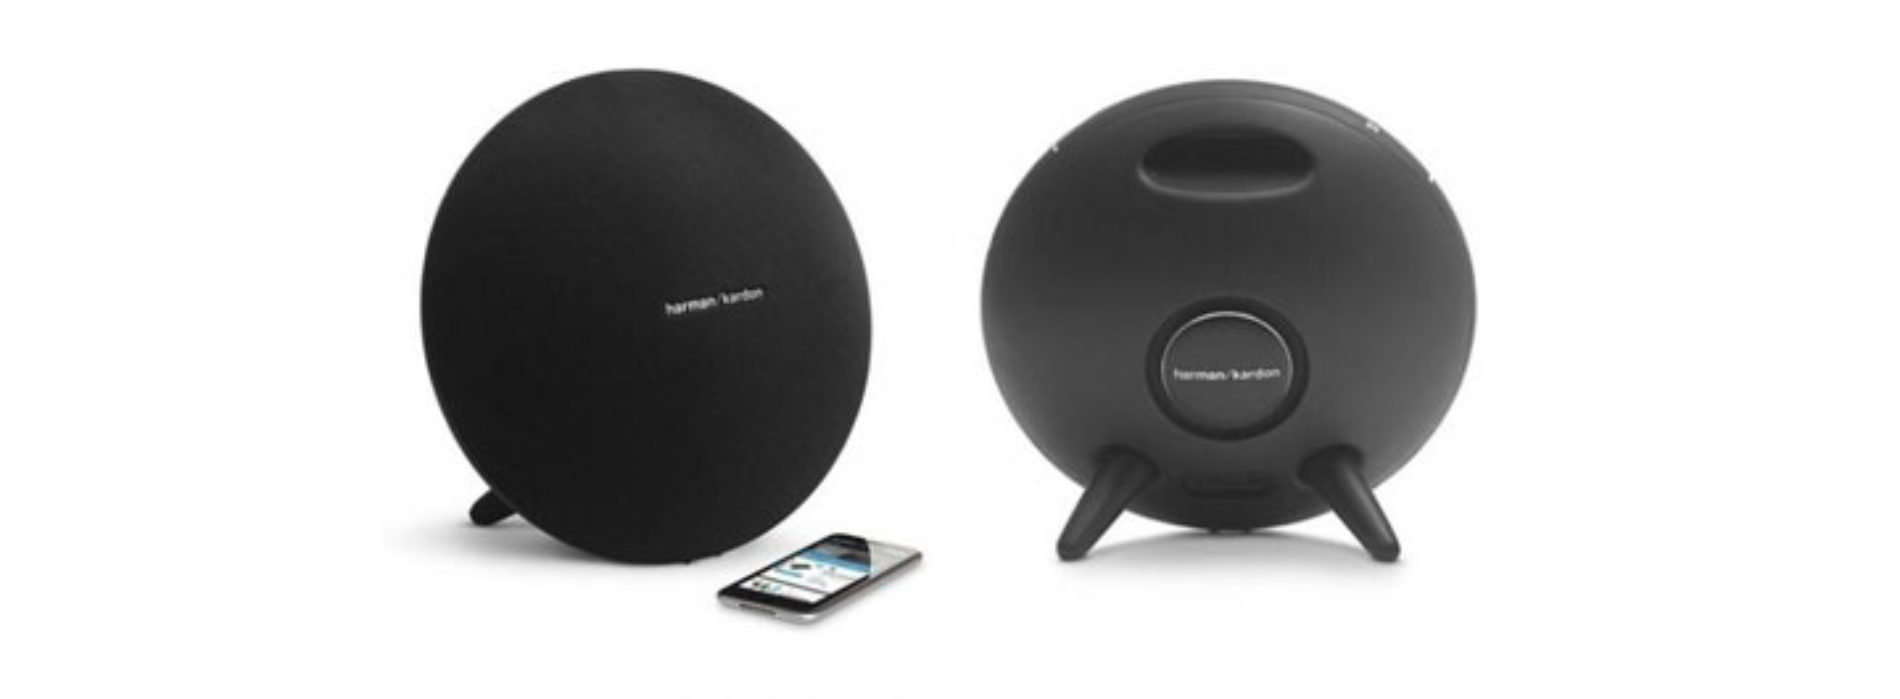 Ремонт Harman Kardon Onyx Studio 4 — не включается